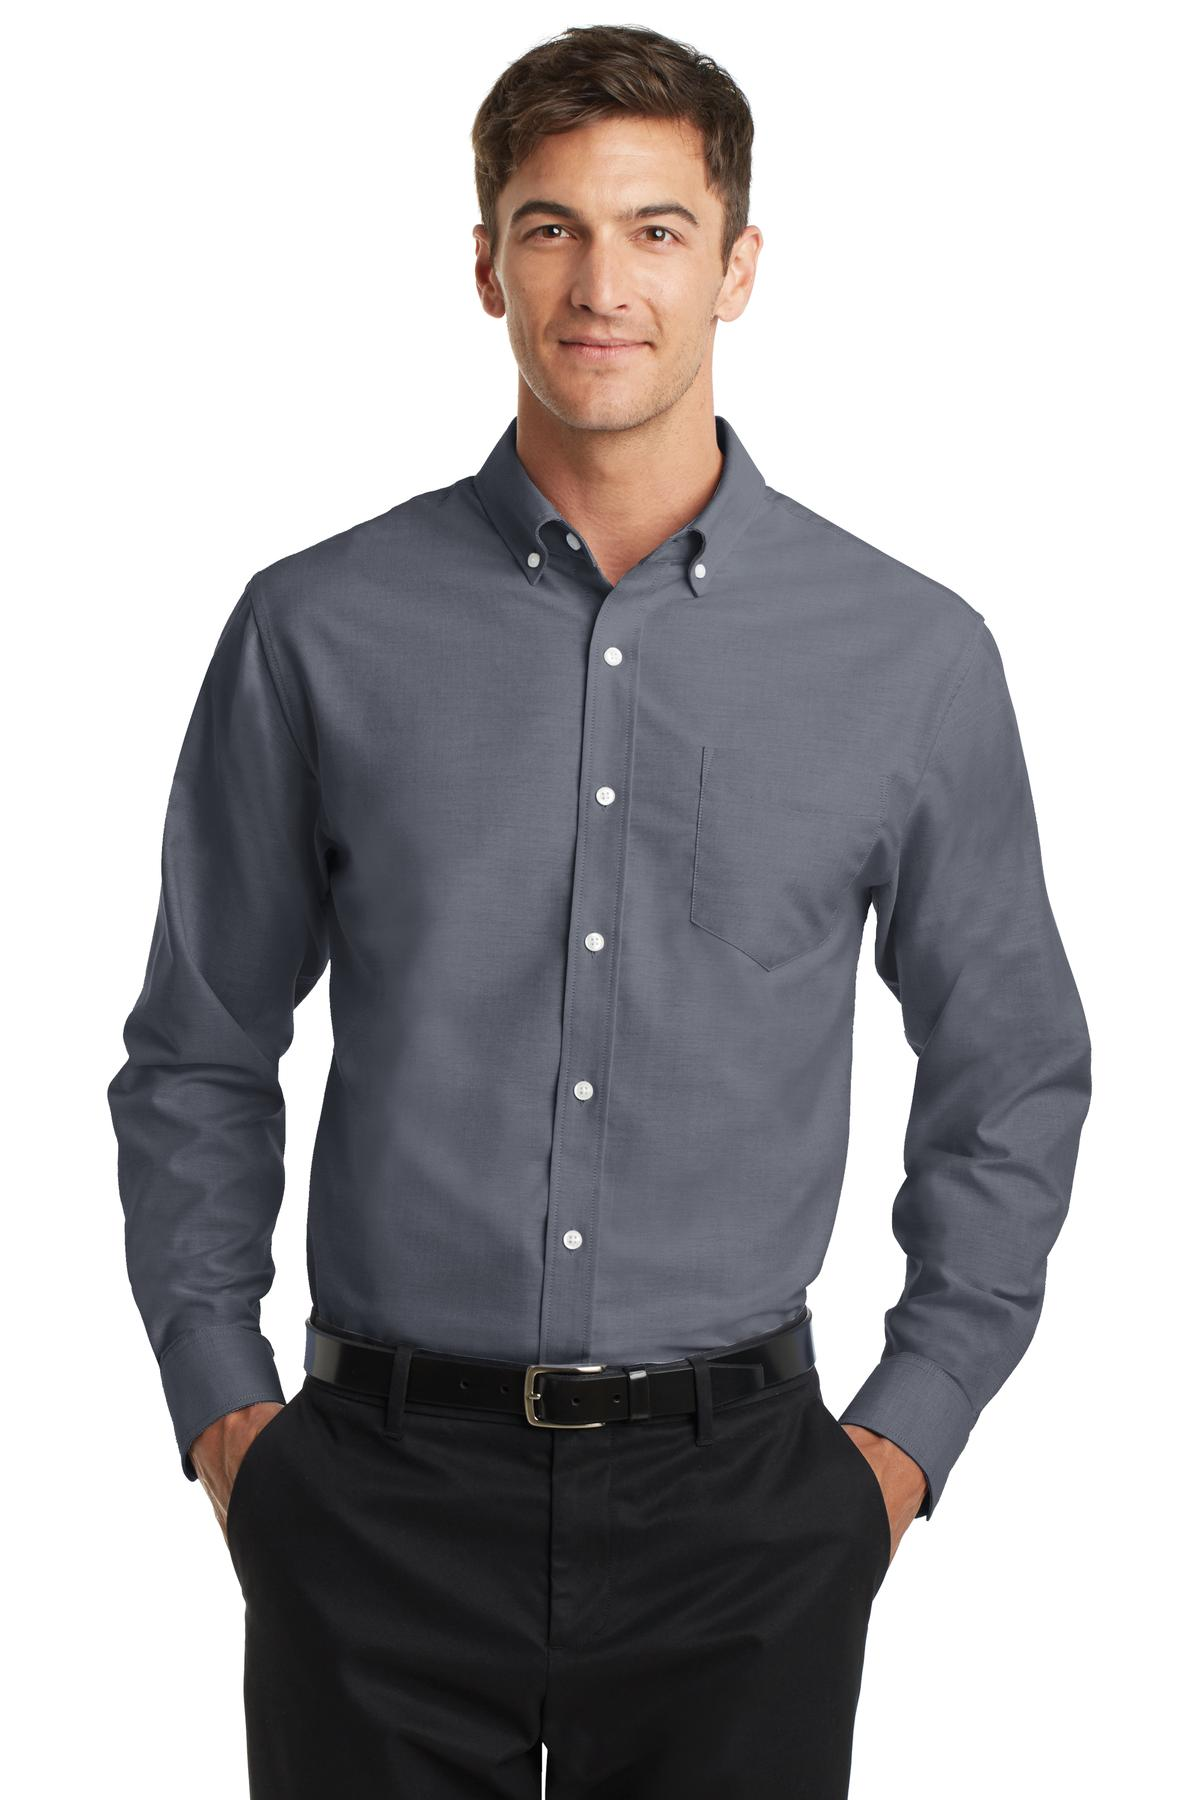 port authority® s658 - superpro oxford shirt ayoygda